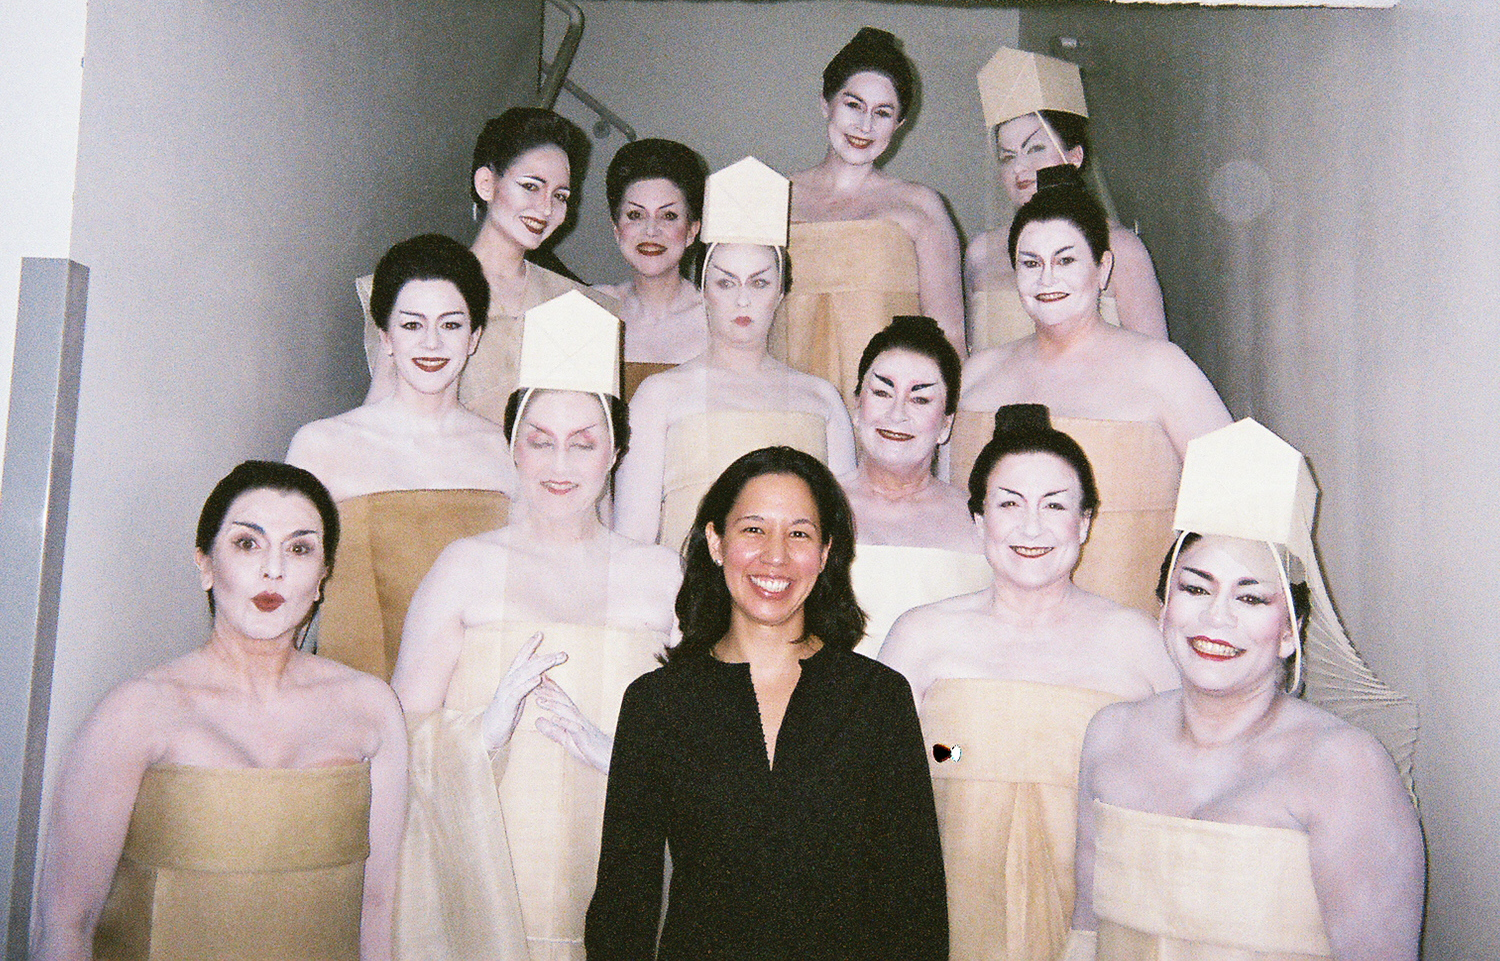 LA Opera choristers in costume from the infamous Robert Wilson production of Madama Butterfly in 2009